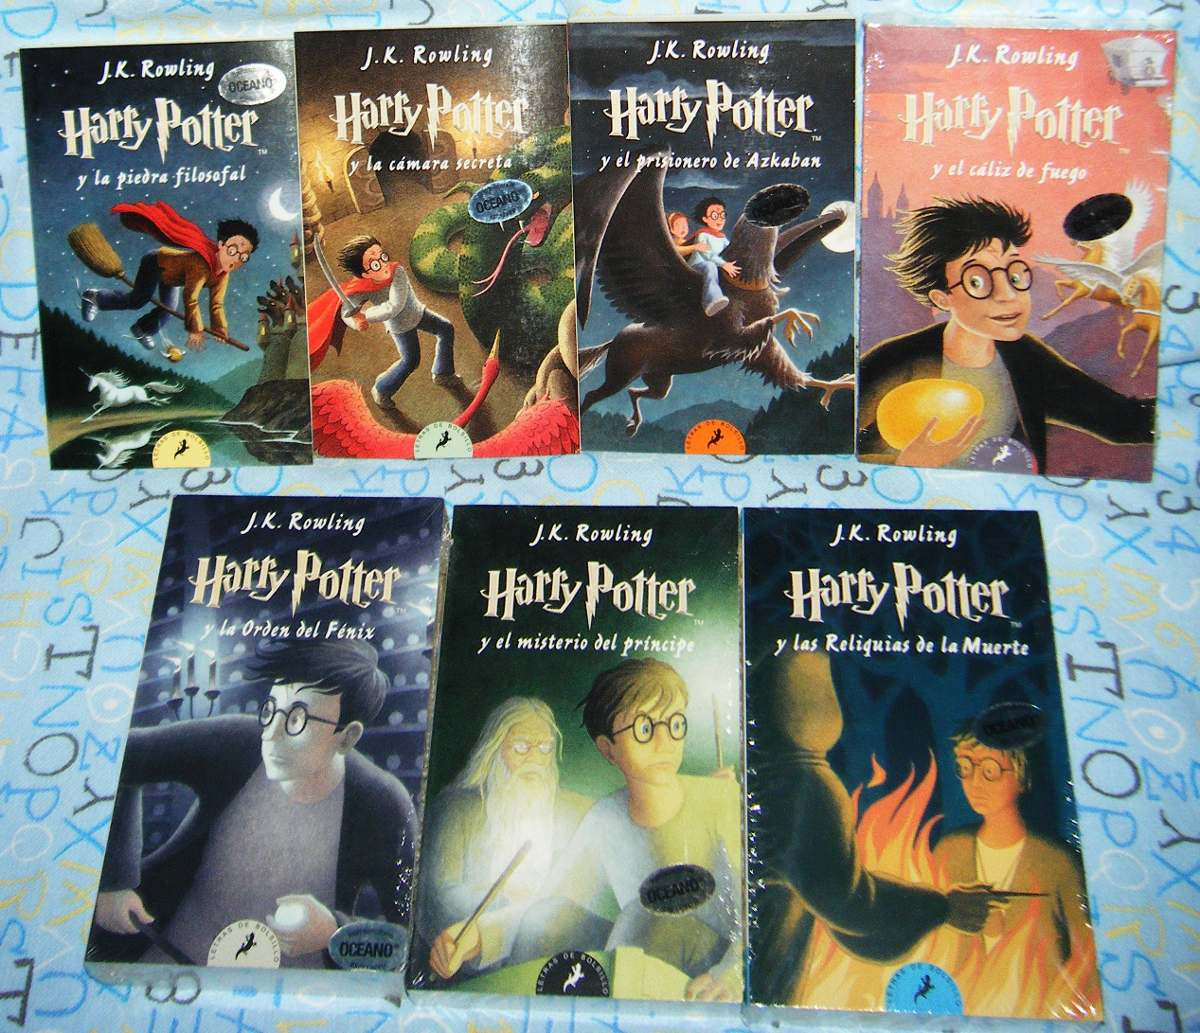 Pack Todos Los Libros De Harry Potter Libros De Harry Potter Libro De Hechizos De Harry Potter